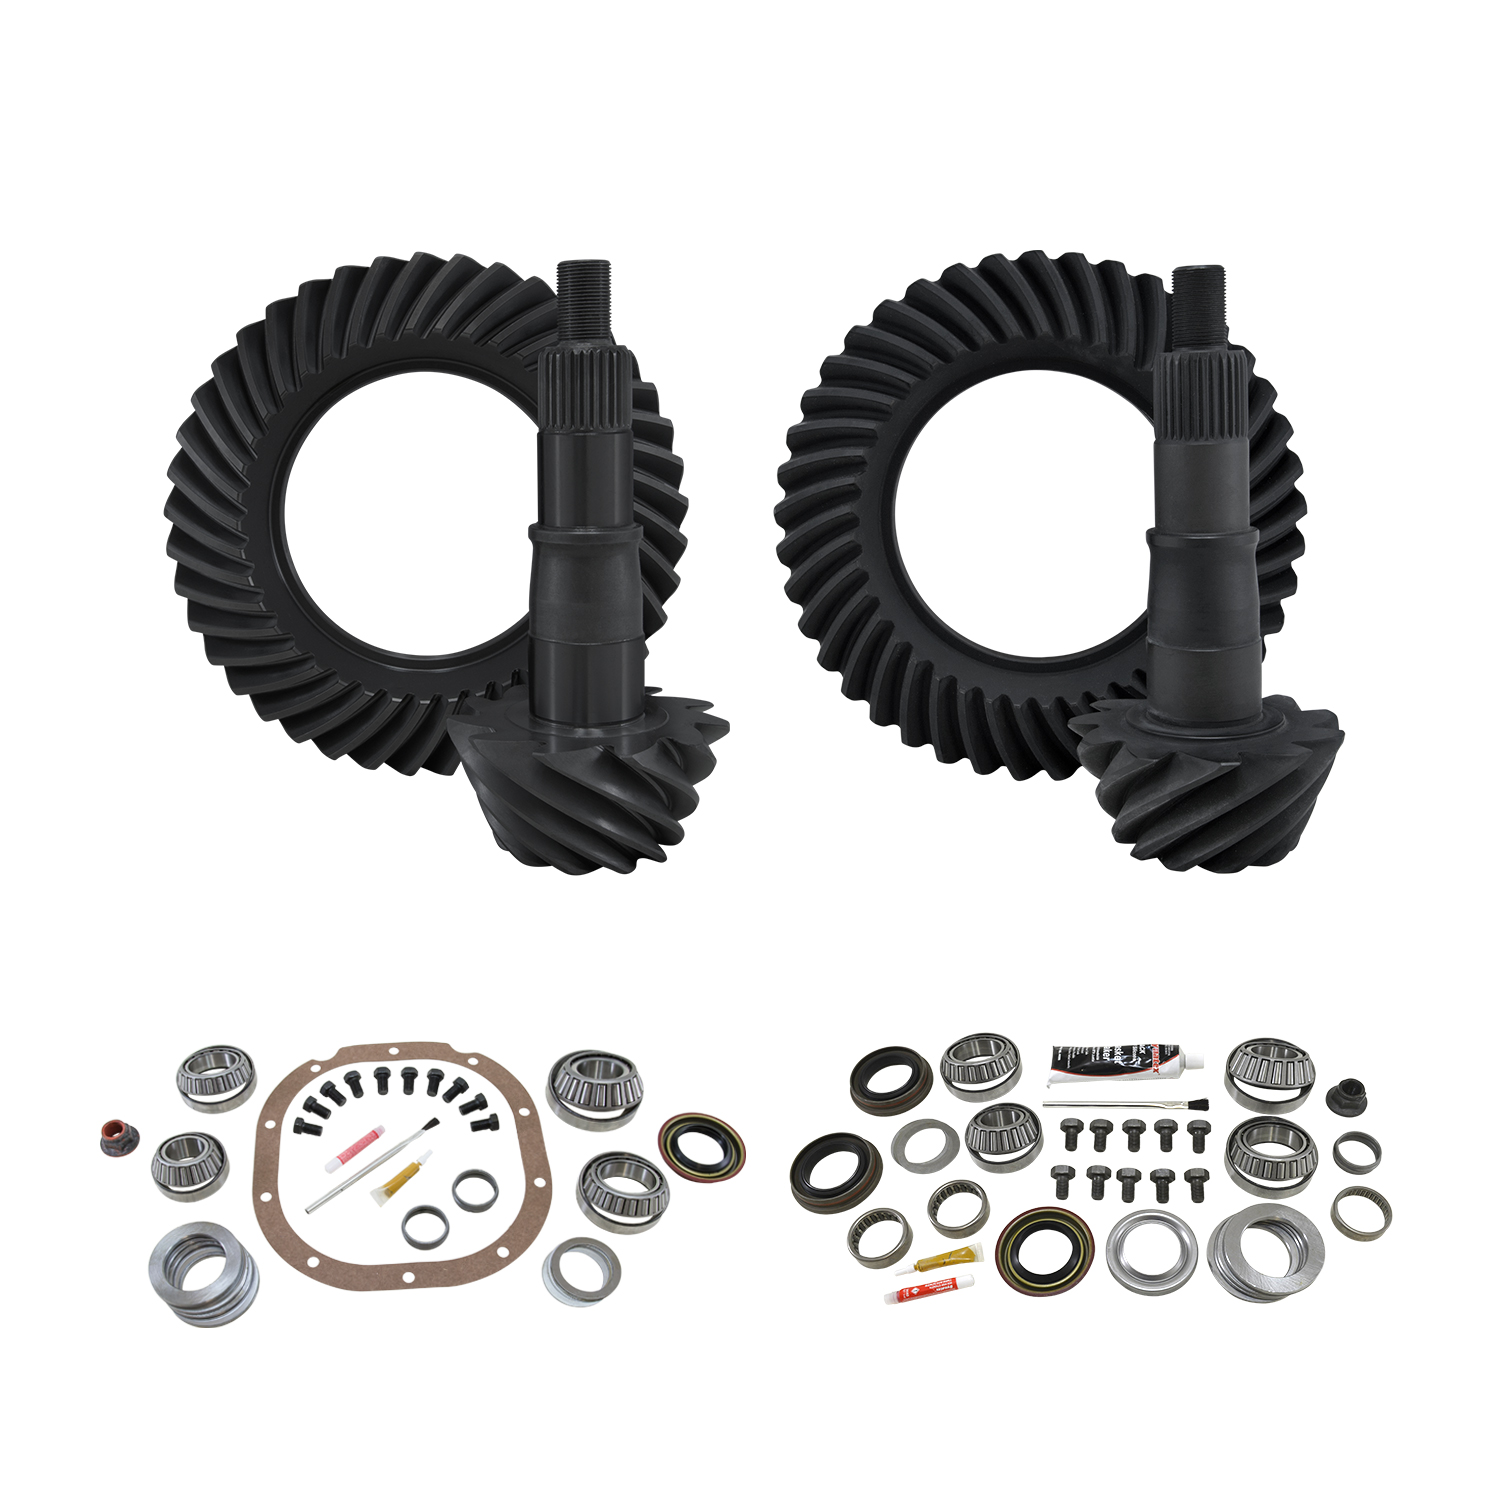 YGK117 - Yukon Complete Gear and Kit Pakage for Various Ford F150 with 8.8